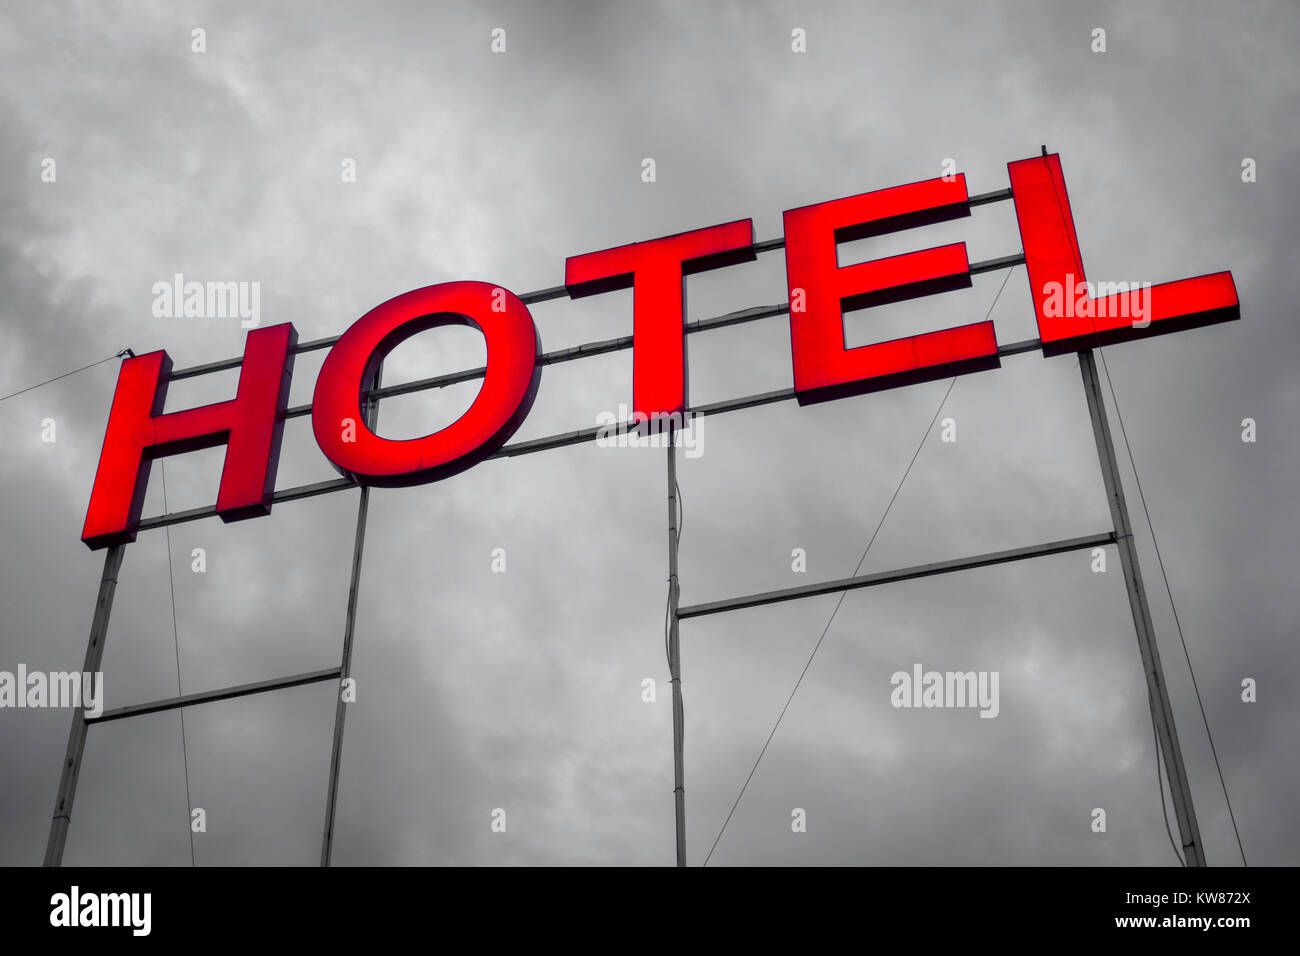 Large illuminated hotel letters sign against a grey / black & white B&W sky - Stock Image